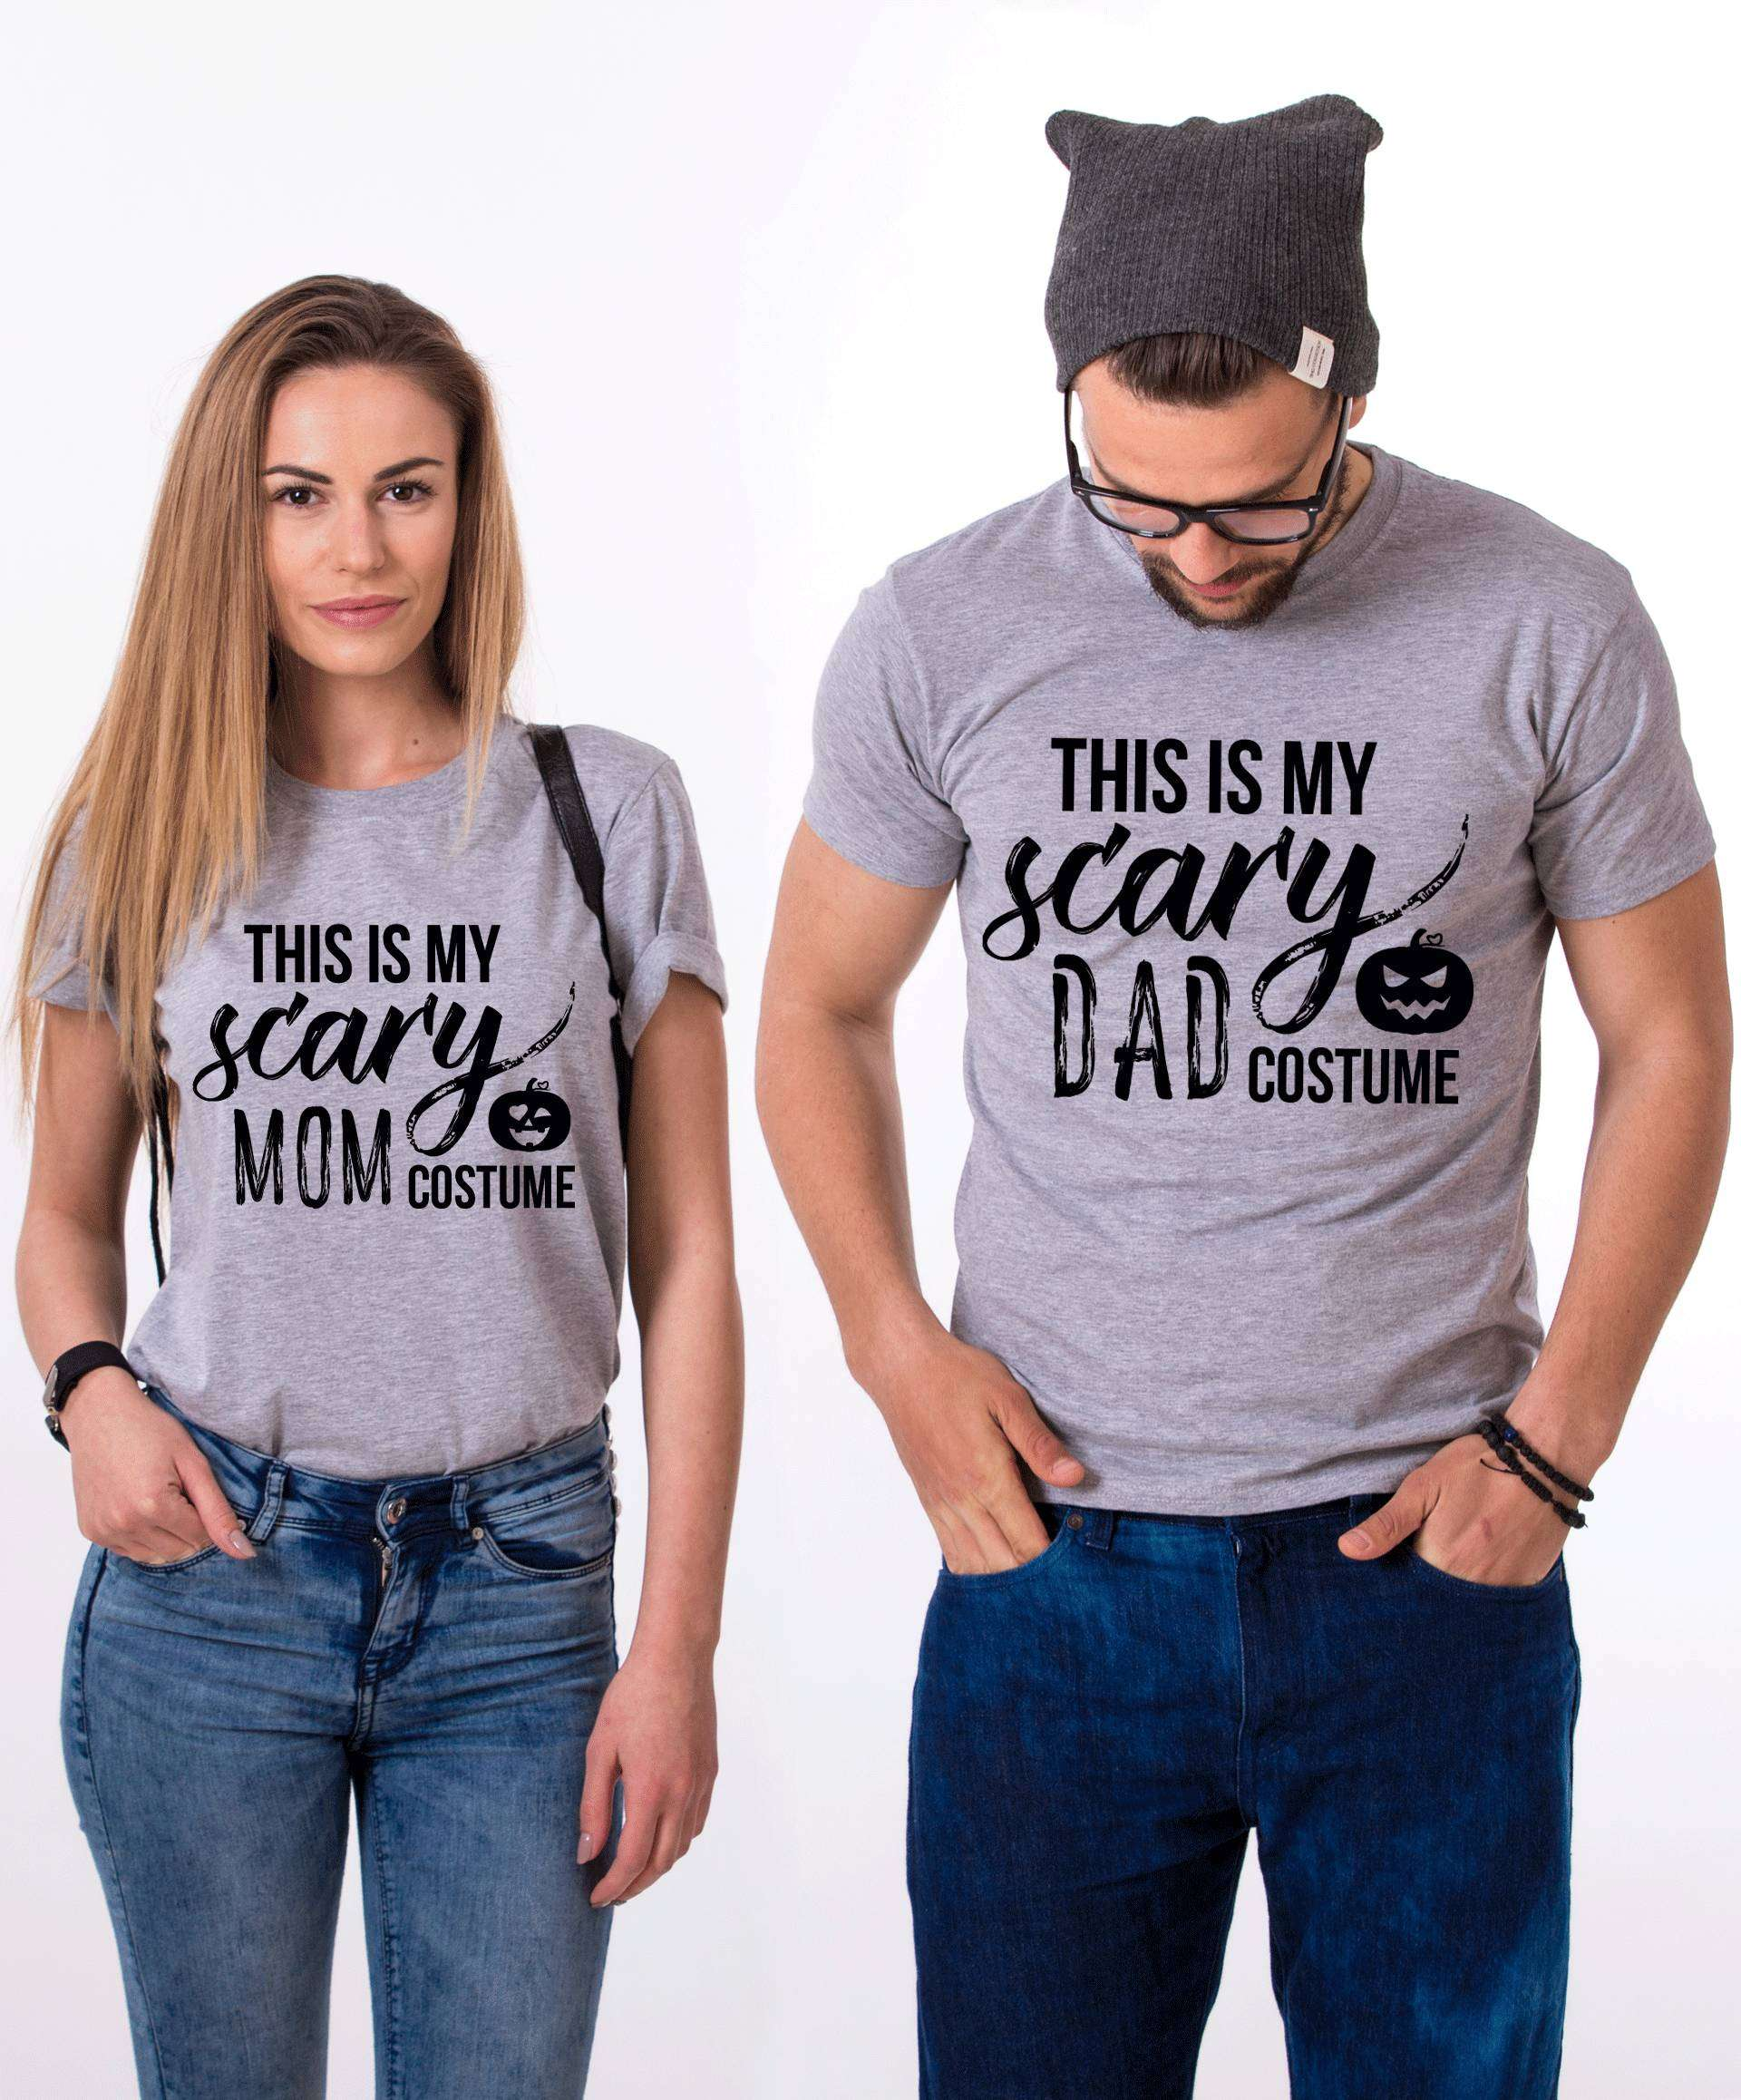 095bf004 Scary Mom Costume Scary Dad Costume Shirts, Matching Couple Shirts